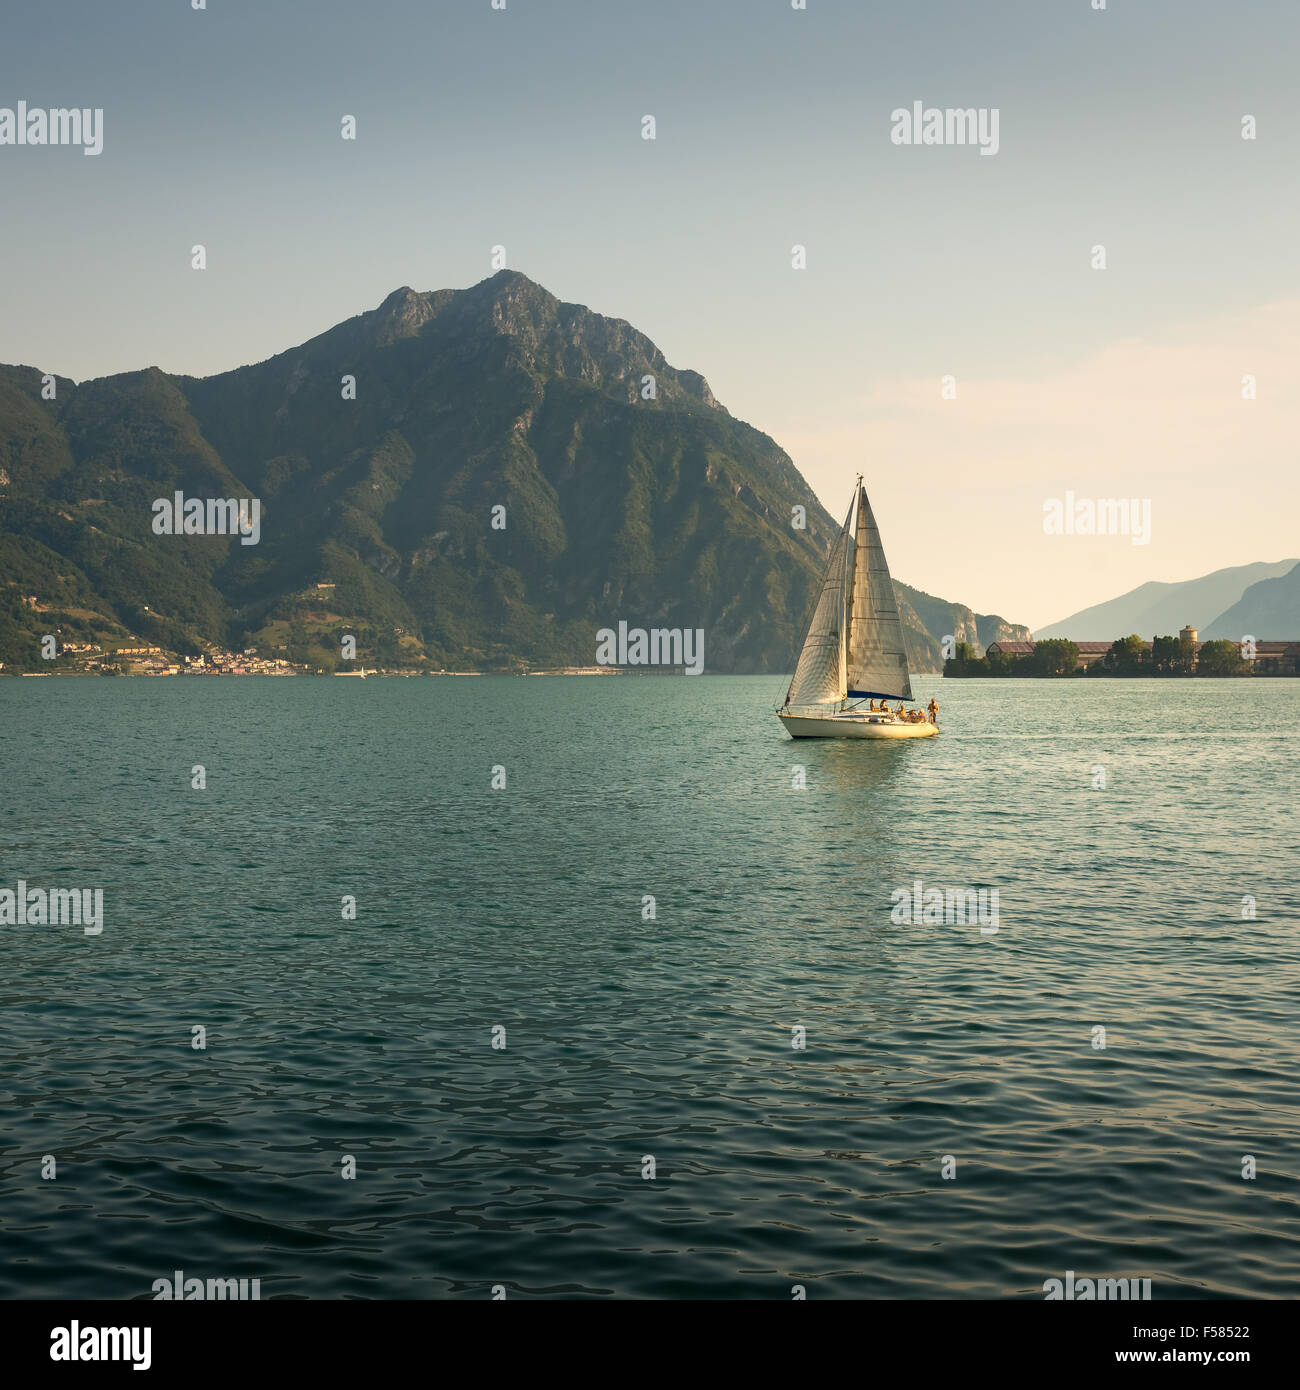 In the picture a view of Lake Iseo from the city of Lovere, on the side of a sailboat. - Stock Image